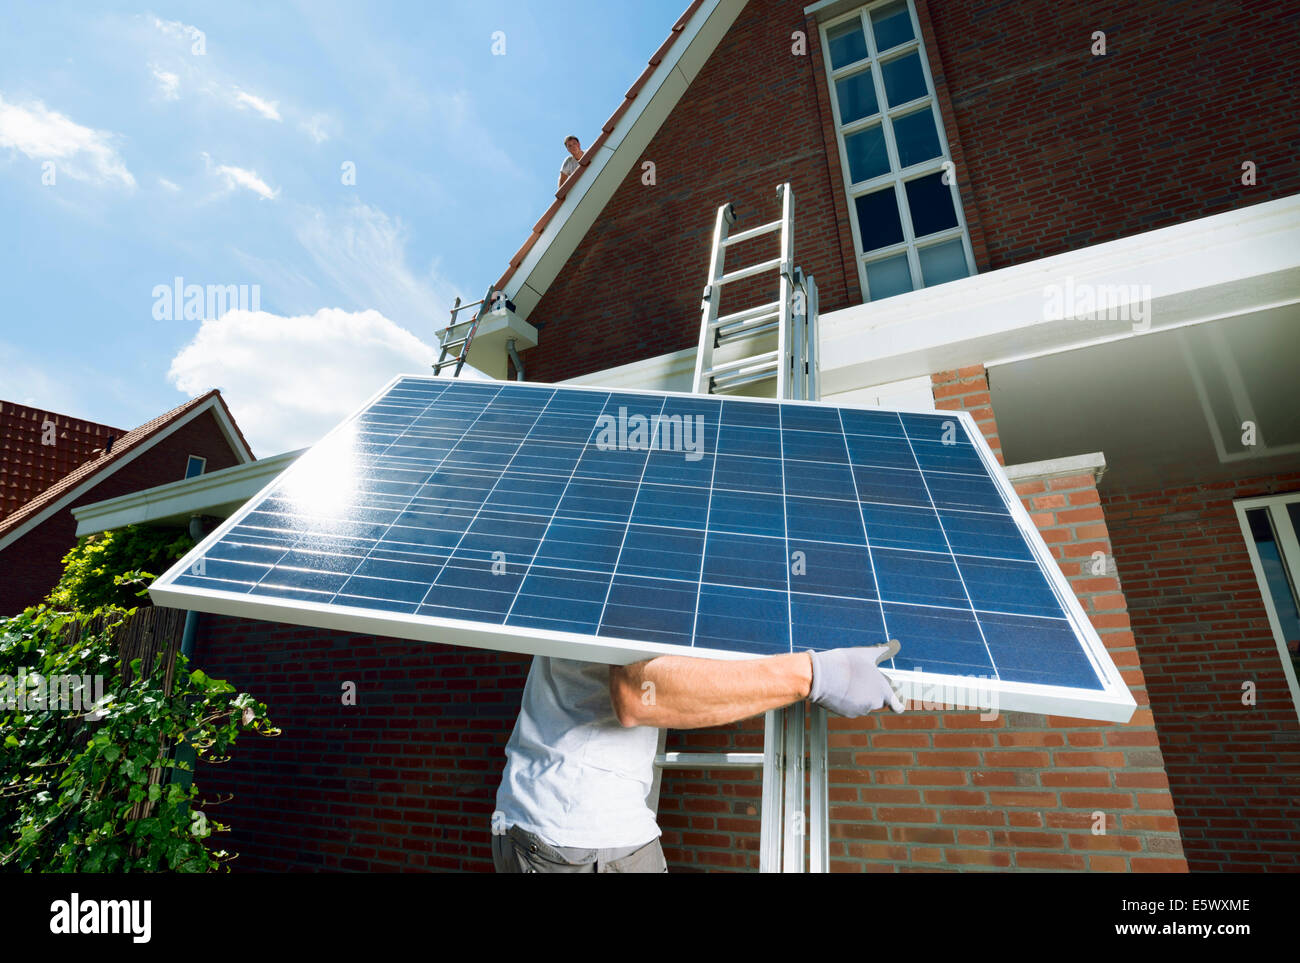 Worker Climbing Ladder Carrying Solar Panel For Roof Of